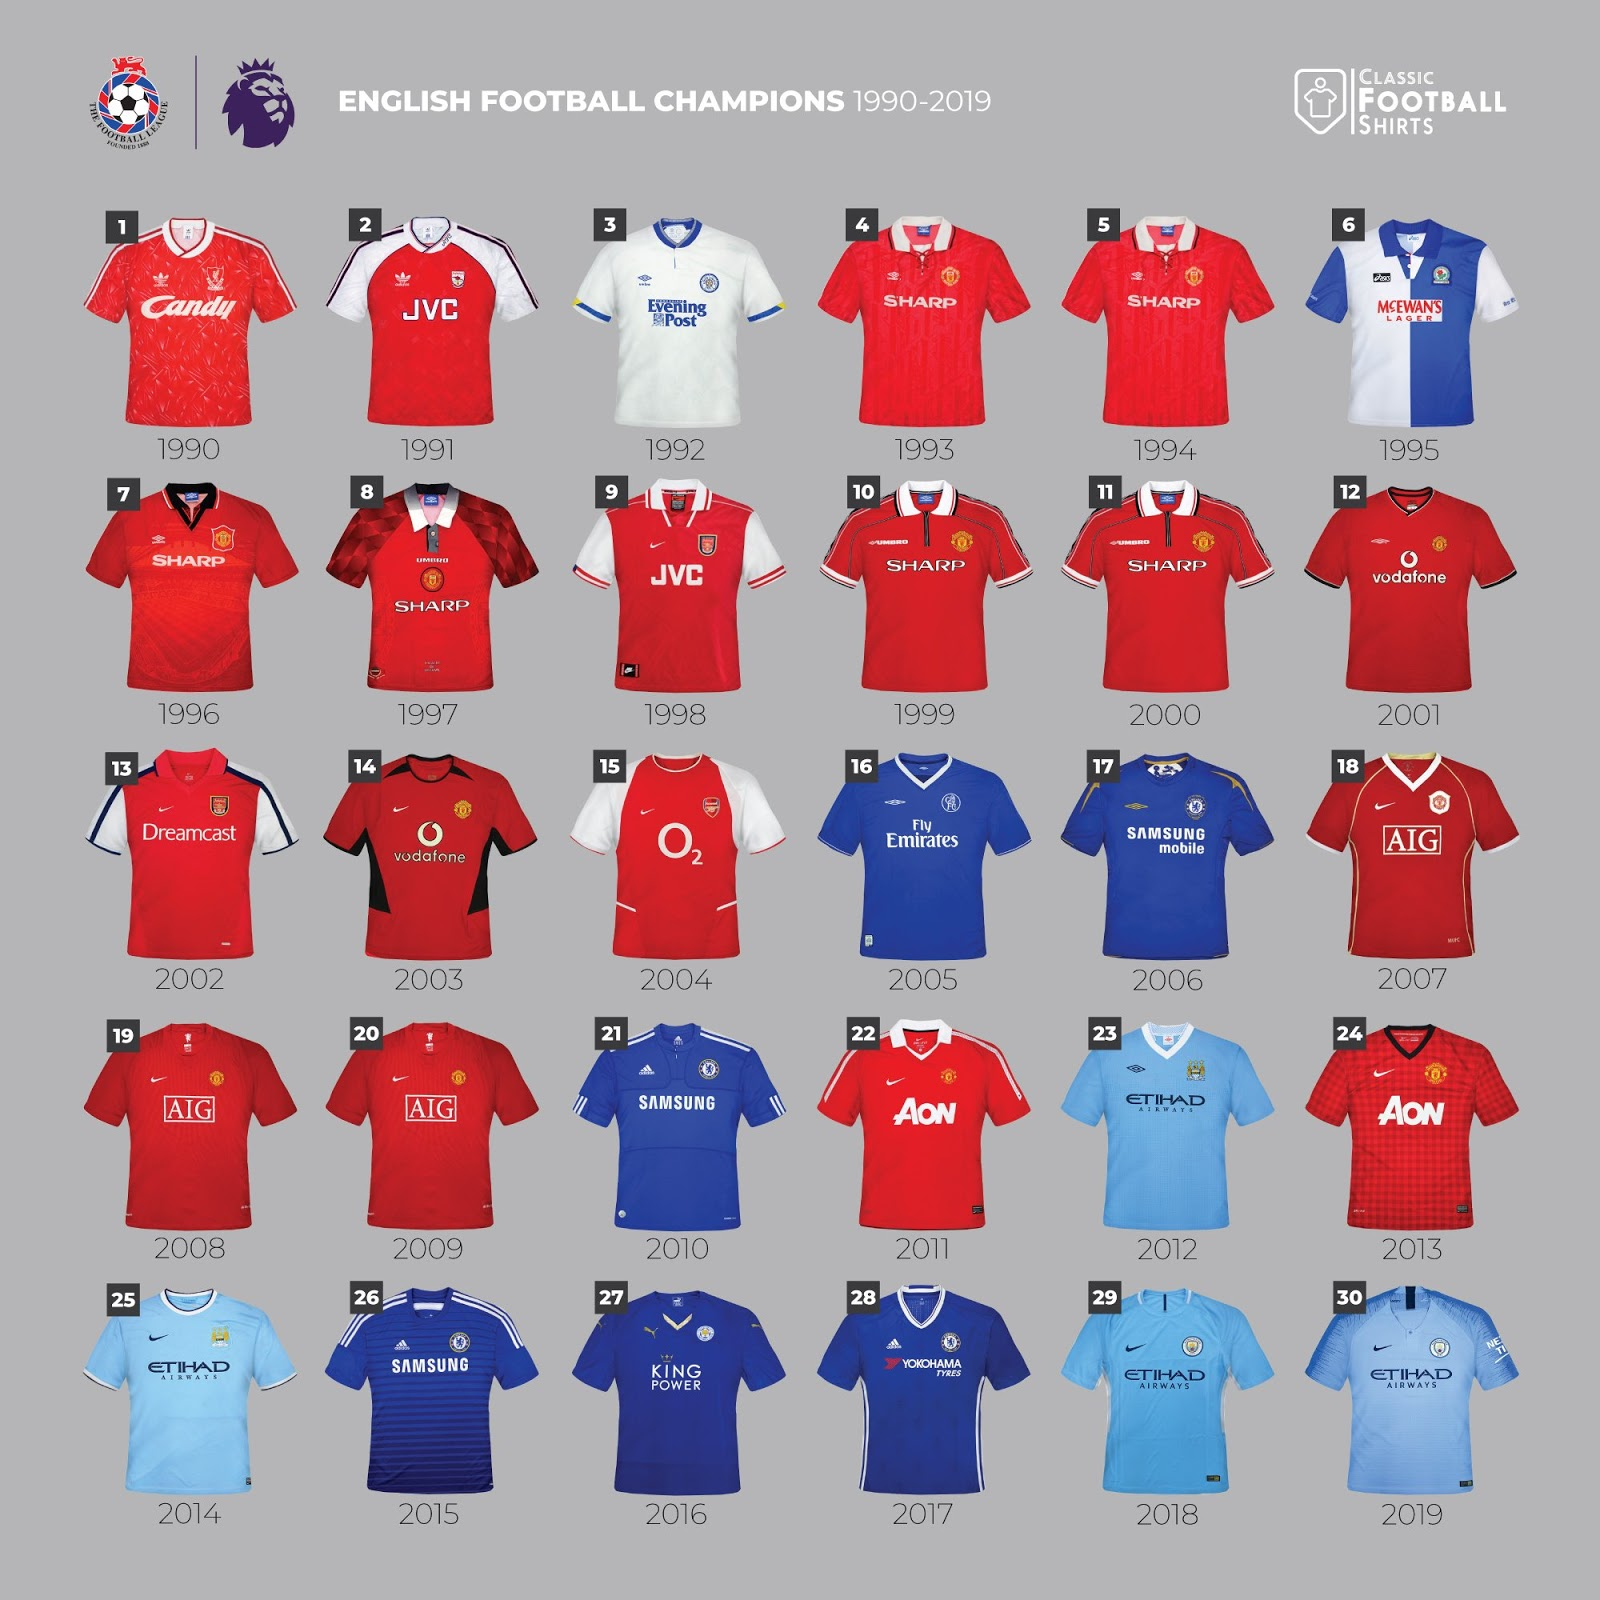 Here Are All 30 English Premier League / Football League Champions